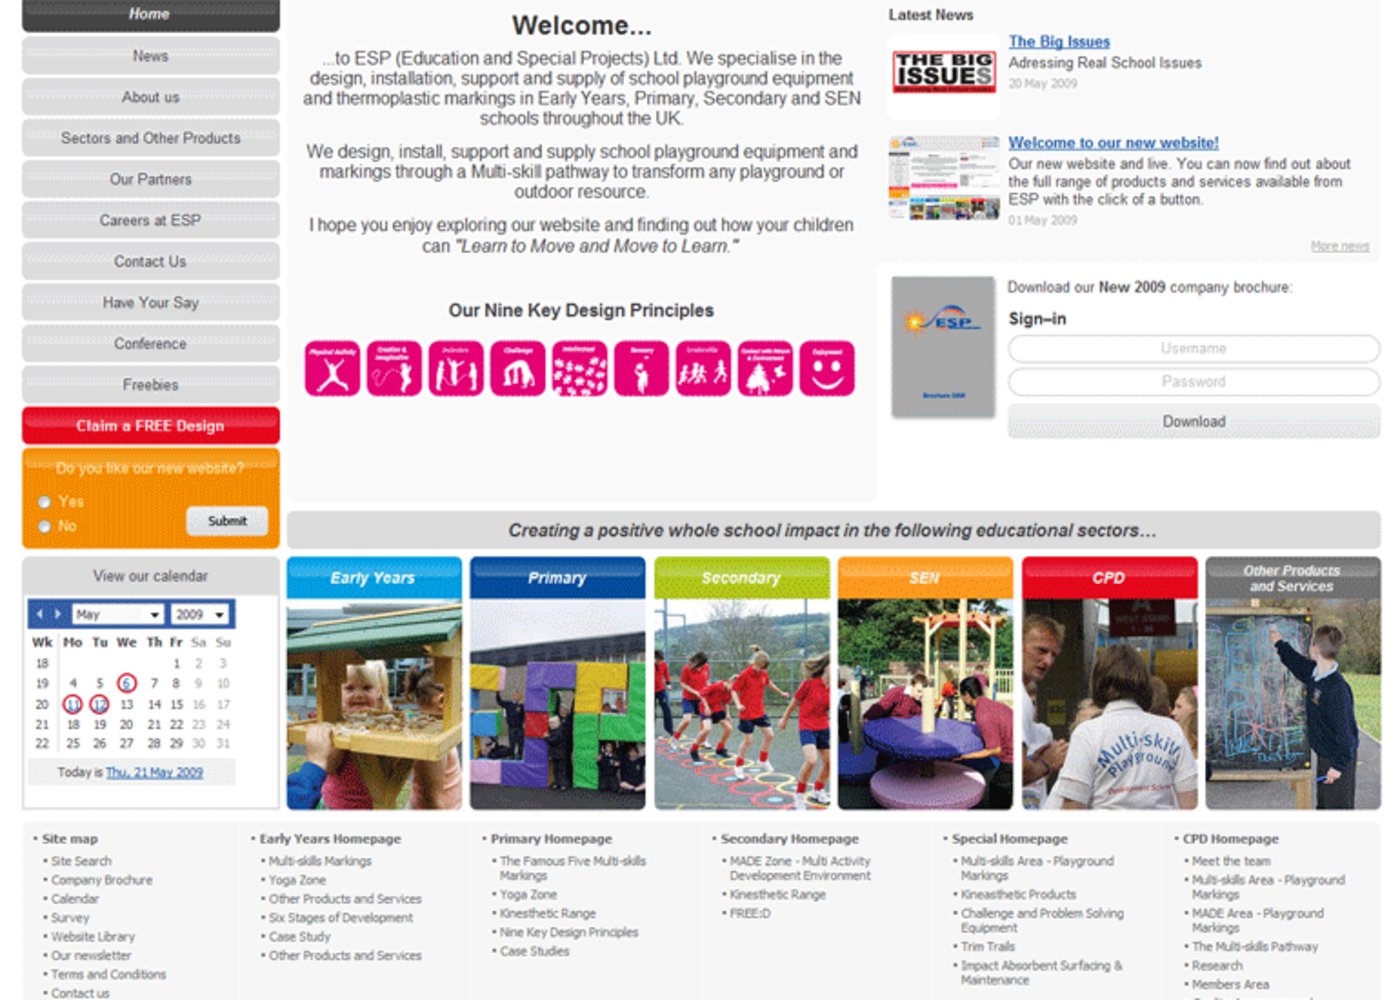 Education and Special Projects Homepage footer